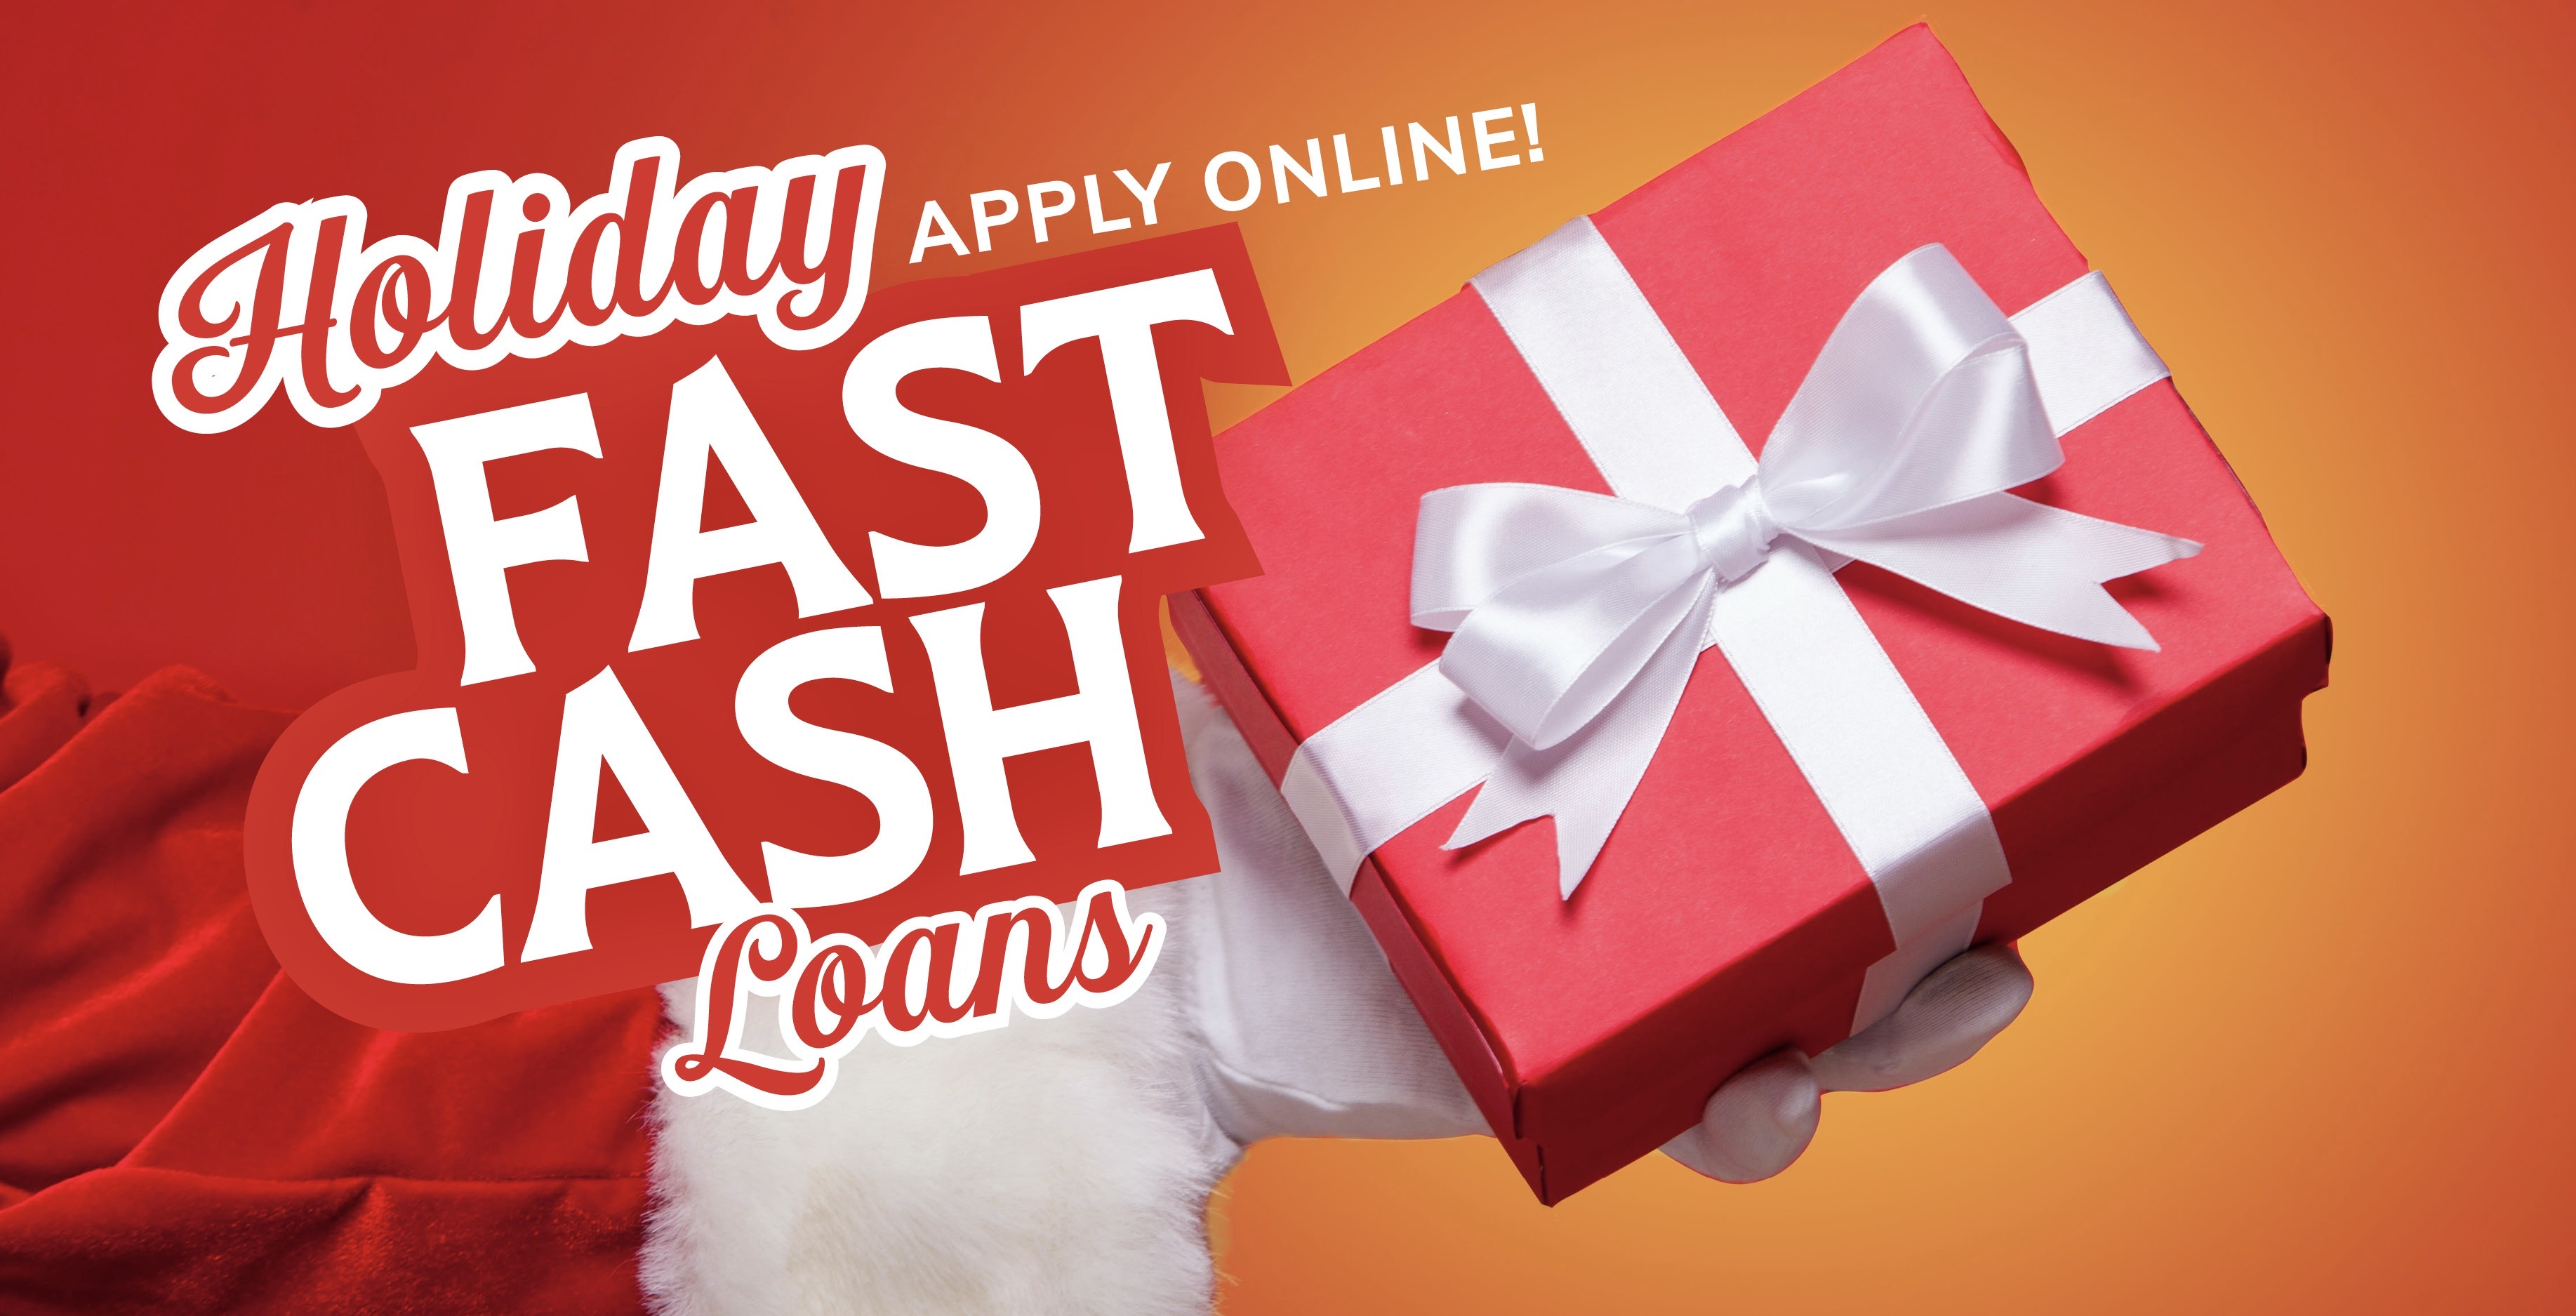 Holiday Fast Cash Loans